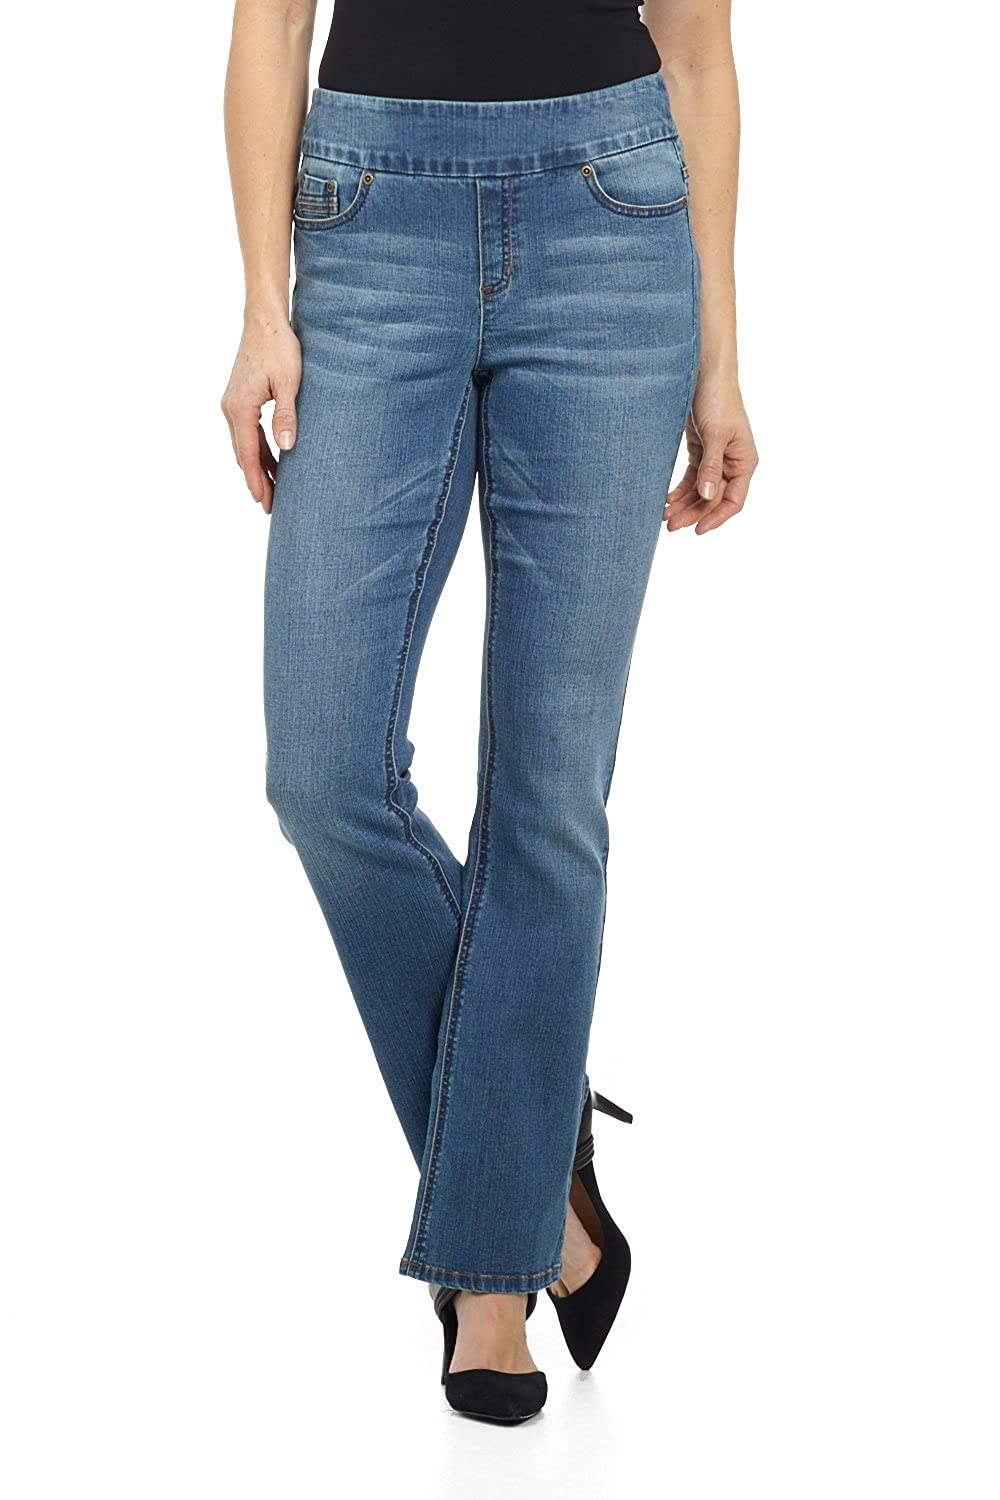 MD STONE SAND Rekucci Jeans Women's Ease in to Comfort Fit PullOn Stretch Bootcut Denim Pants